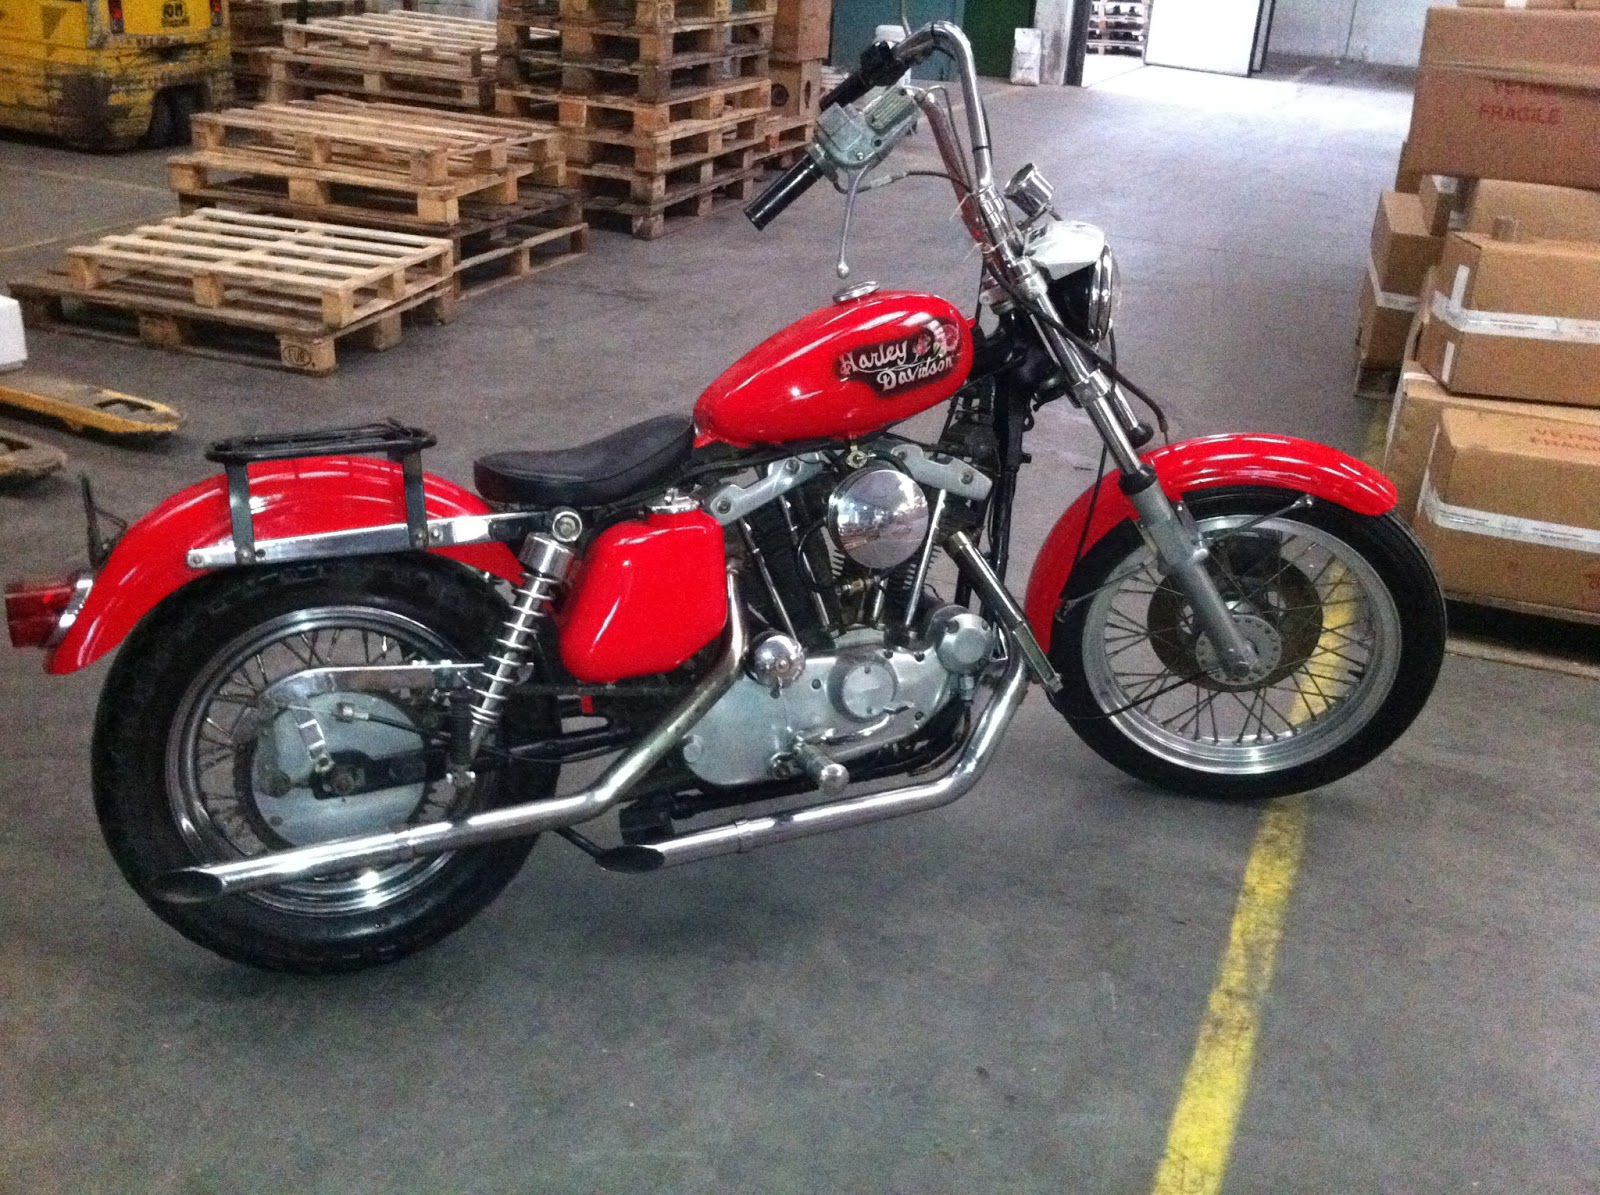 HardSun Motorcycles Bikes For Sale